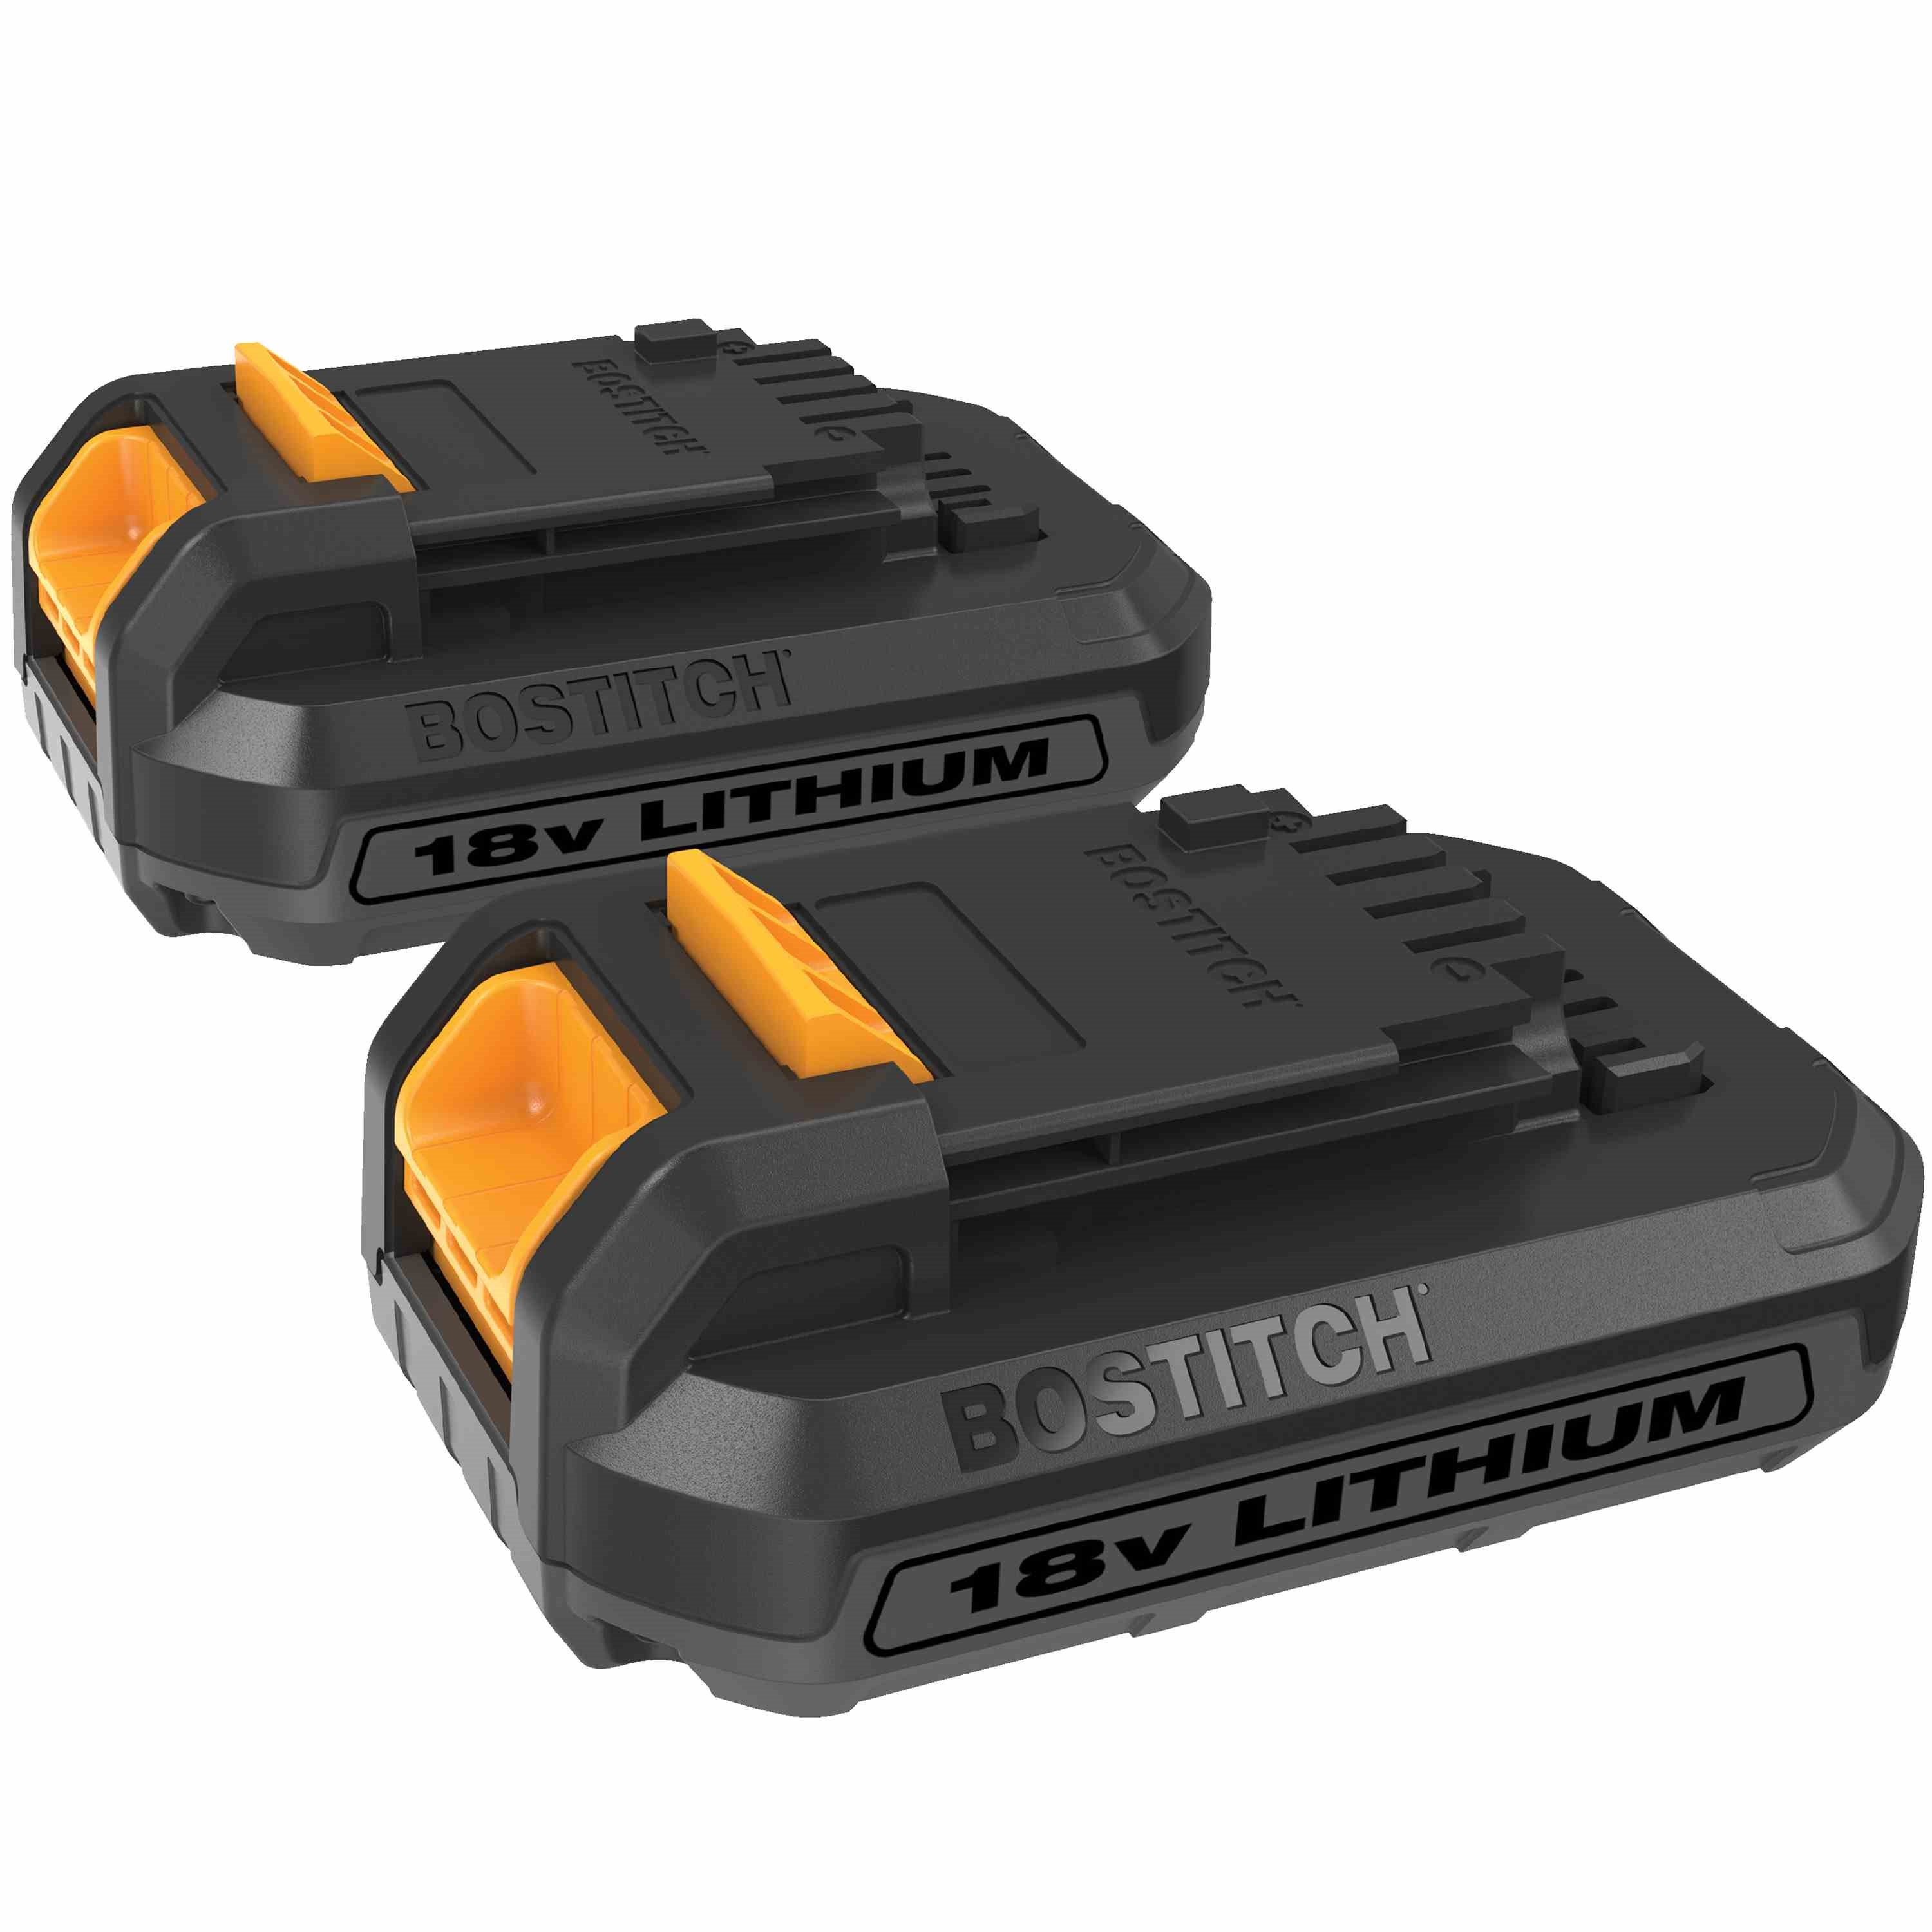 Bostitch - 18V Lithium Ion Battery - BTC480L